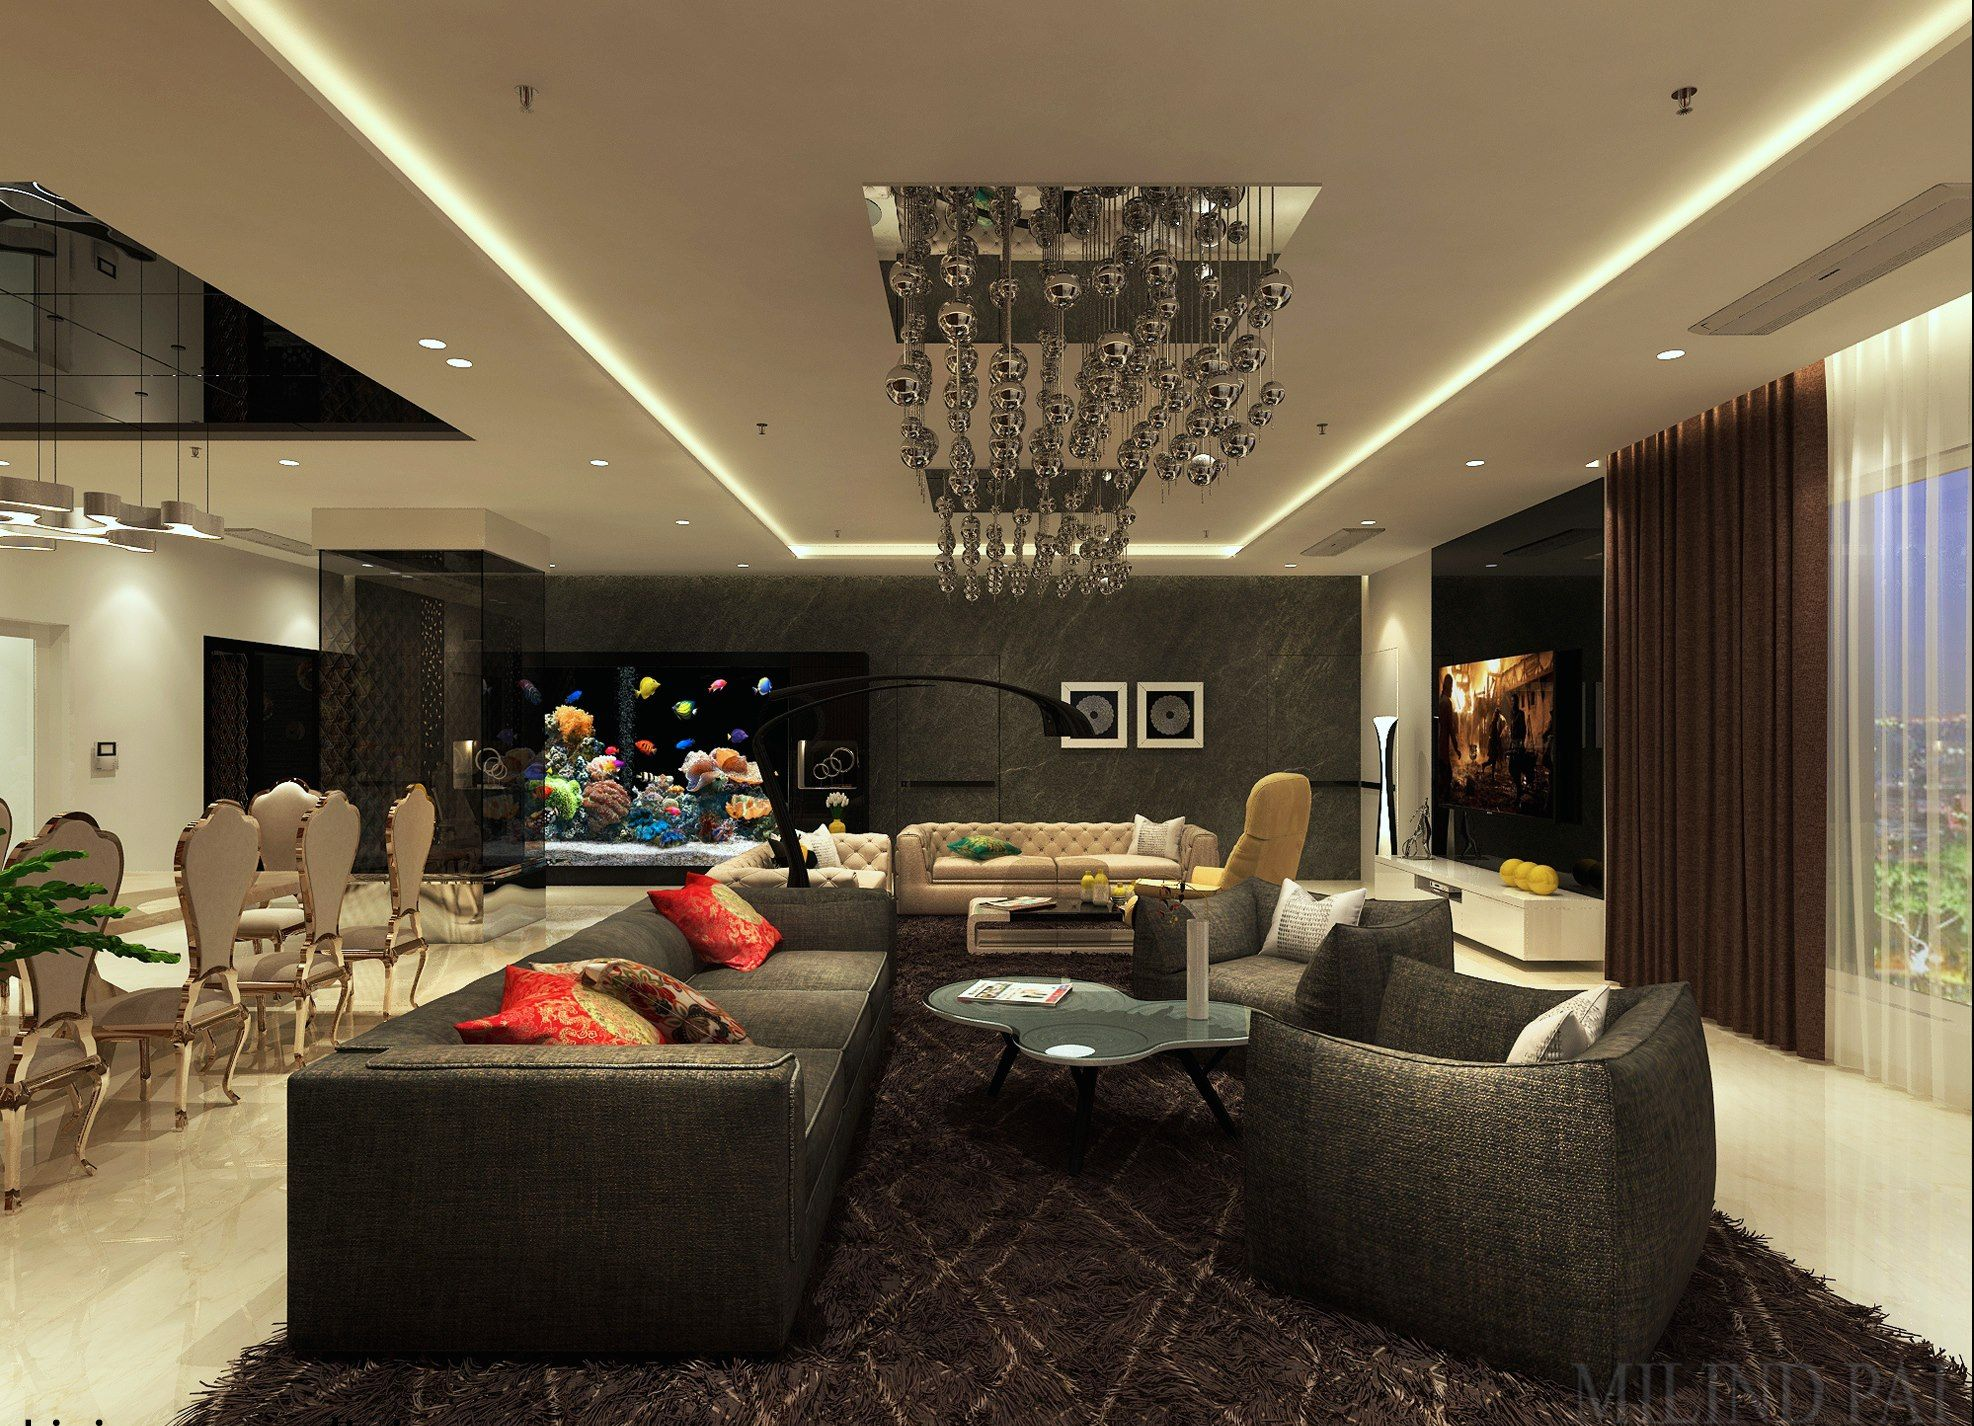 A luxurious living room design for a high rise apartment